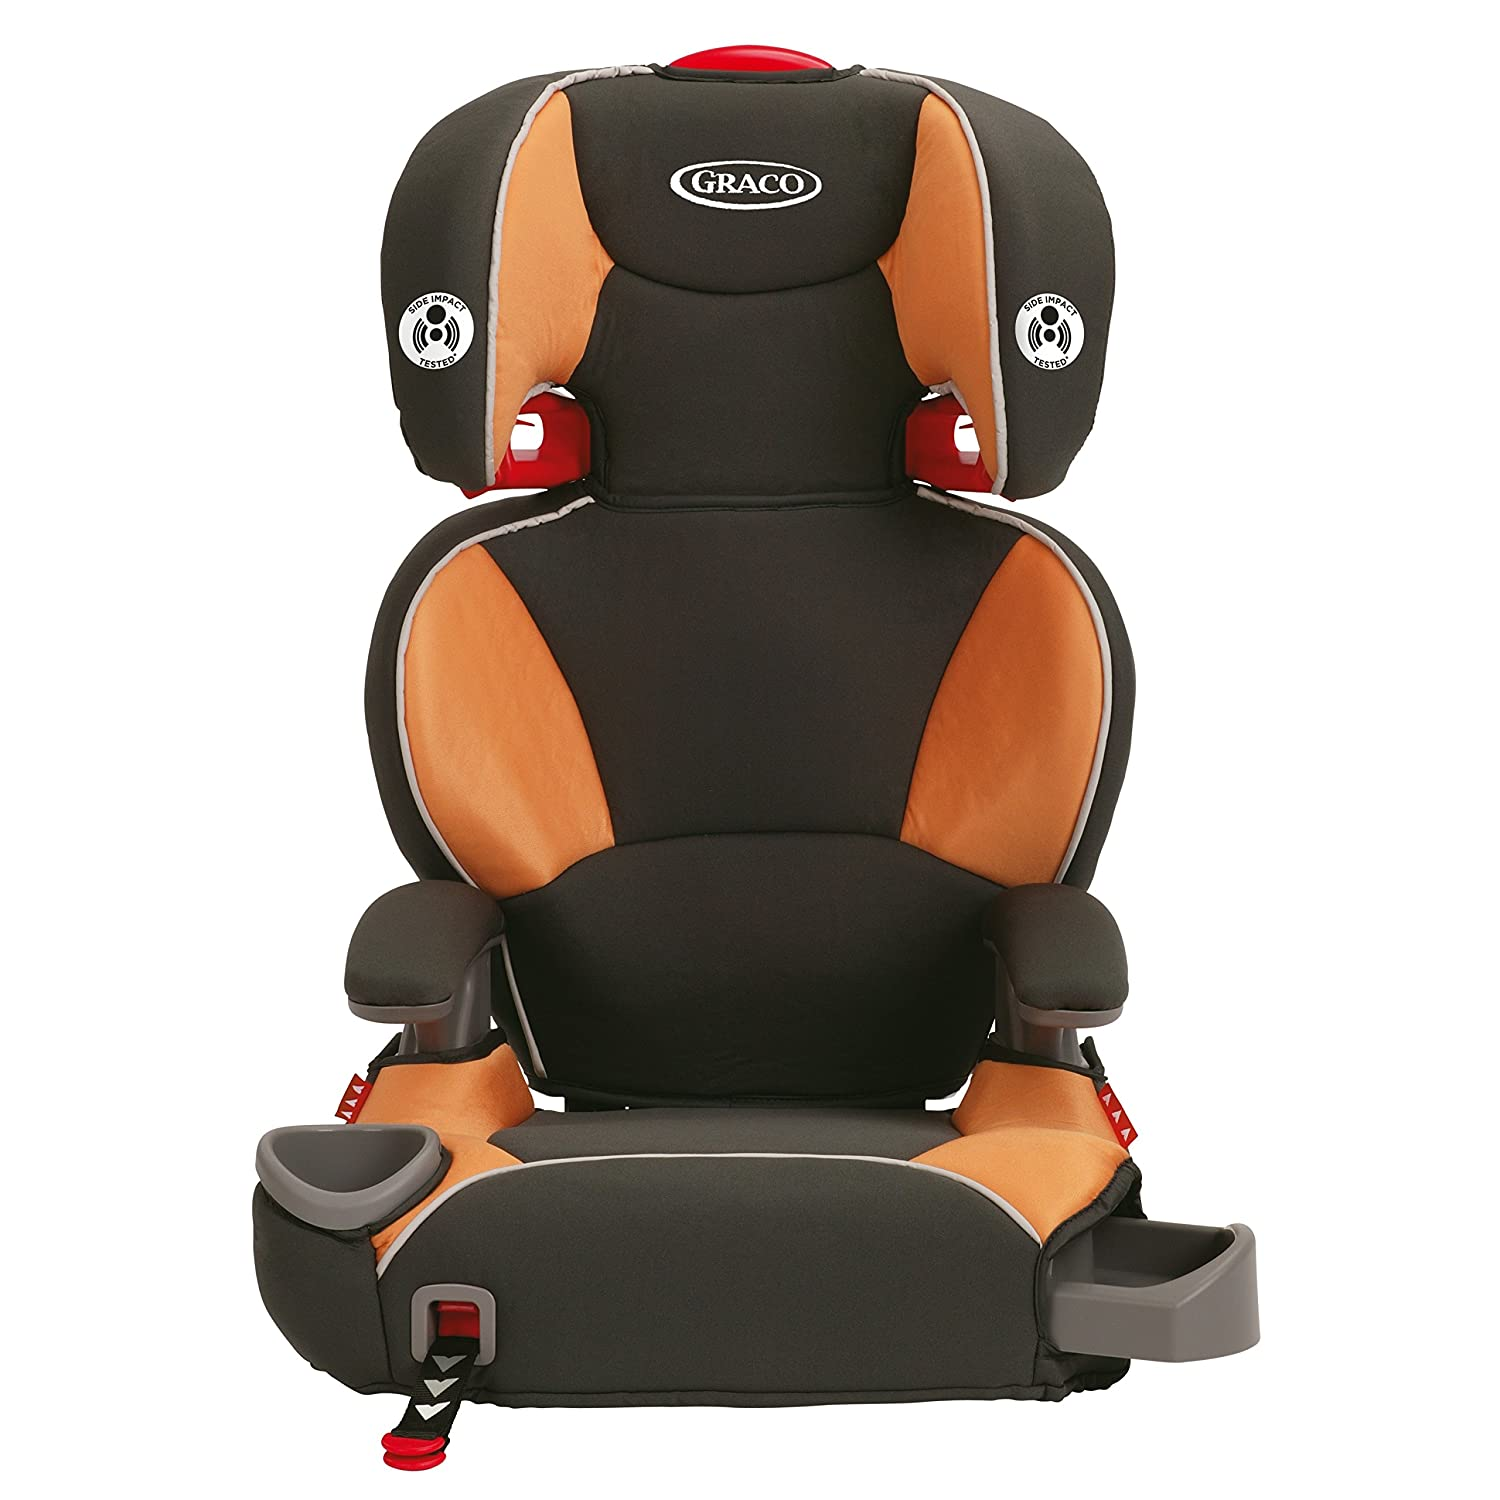 Amazon.com : Graco Affix Highback Booster Car Seat with Latch System ...